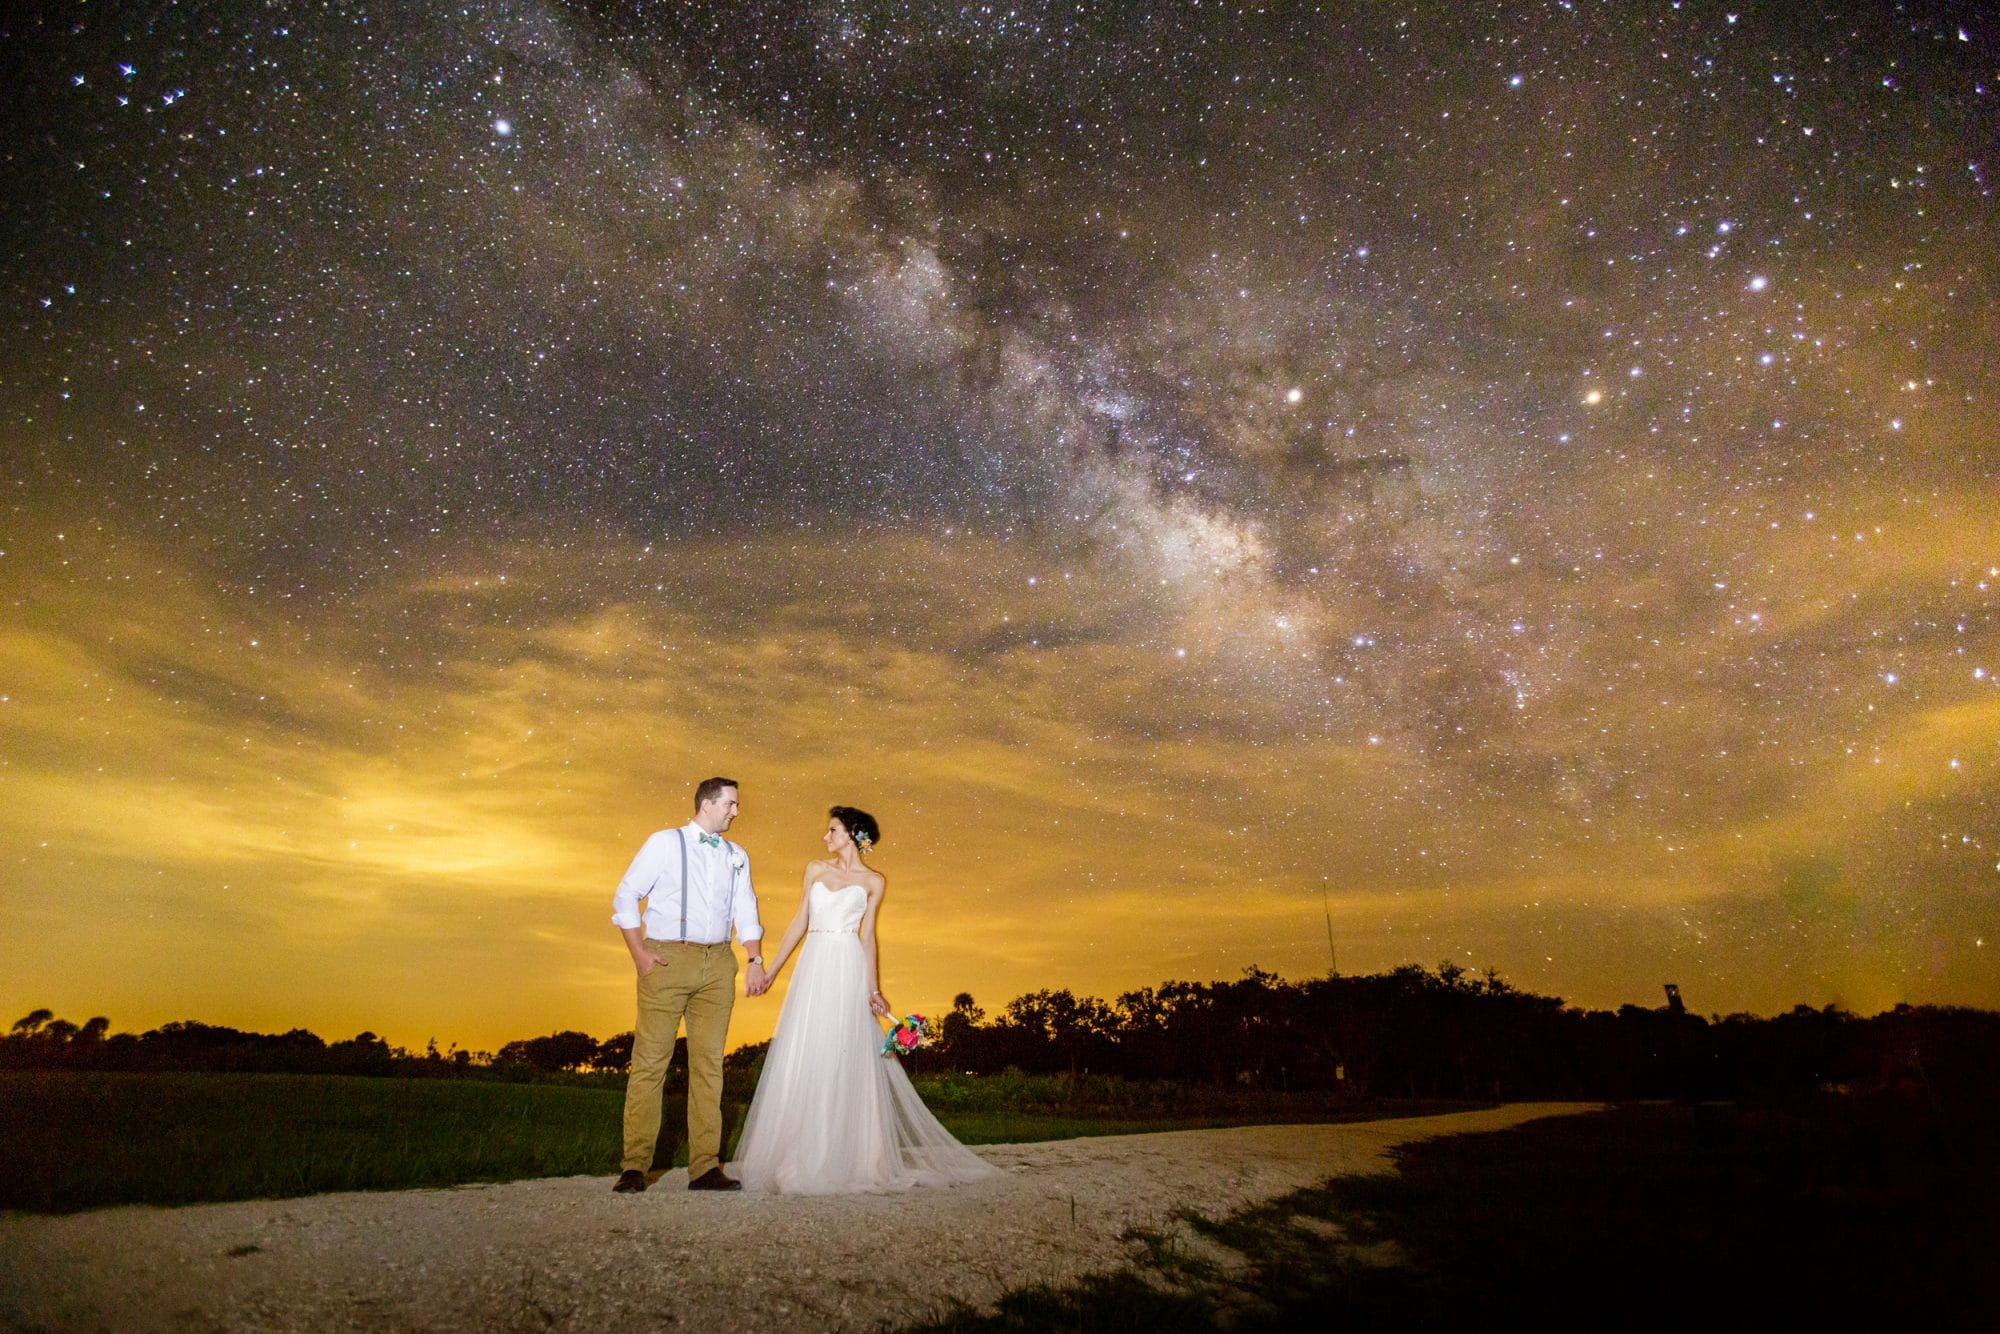 Steven Miller Photography - bride and groom with starry sky and Milky Way behind them